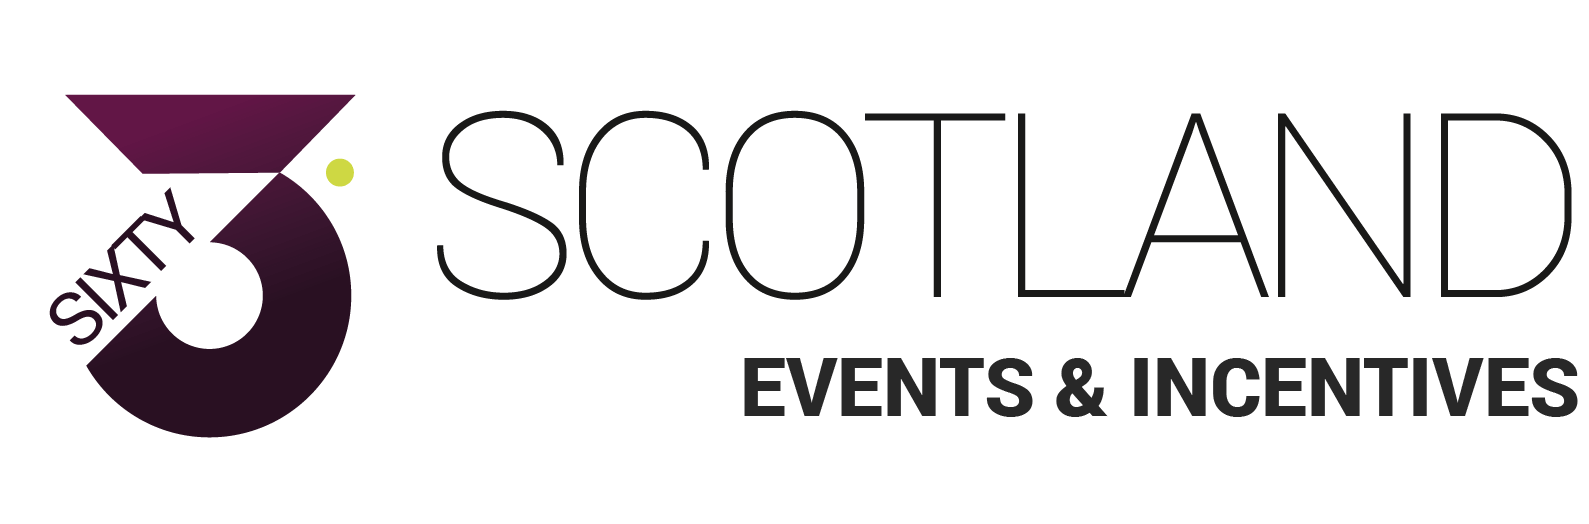 360 Scotland DMC & Events